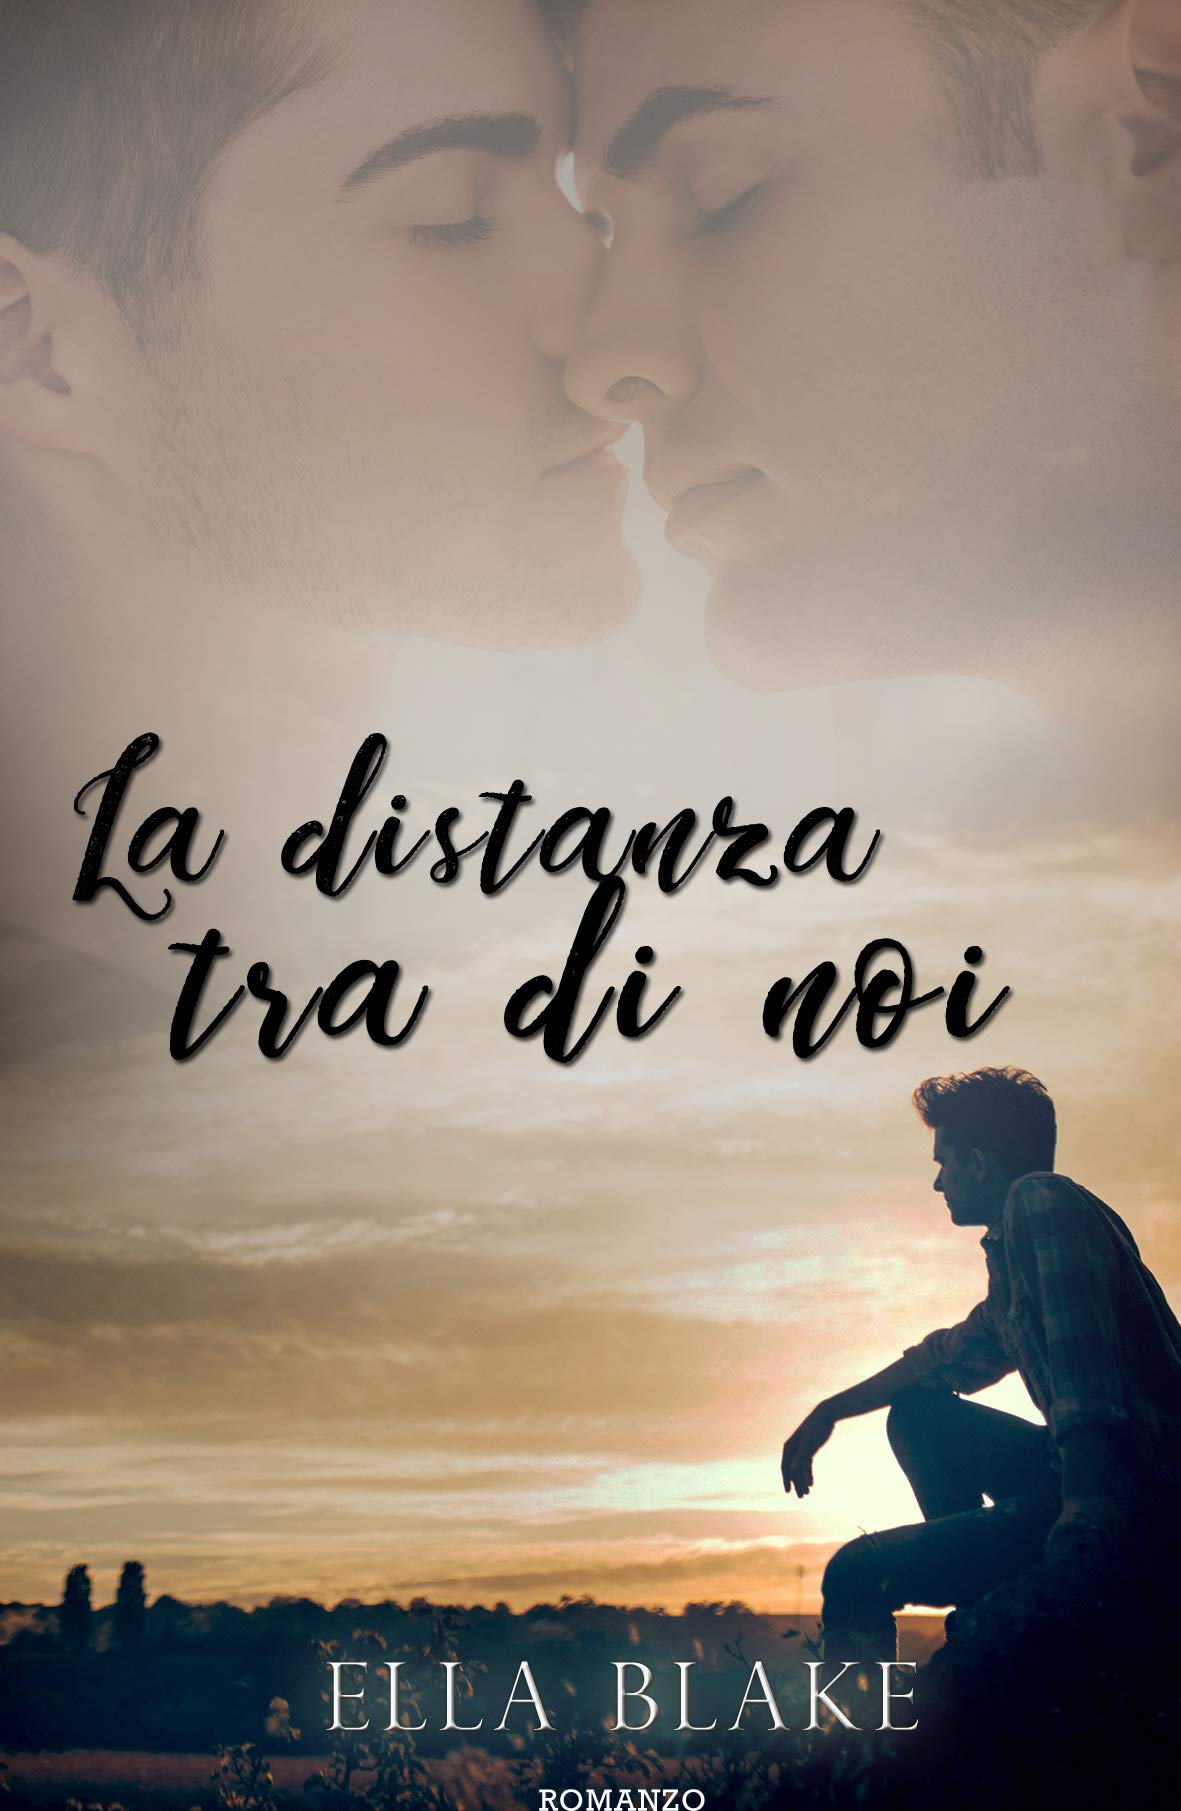 La distanza tra di noi (Close Vol. 2) (Italian Edition)